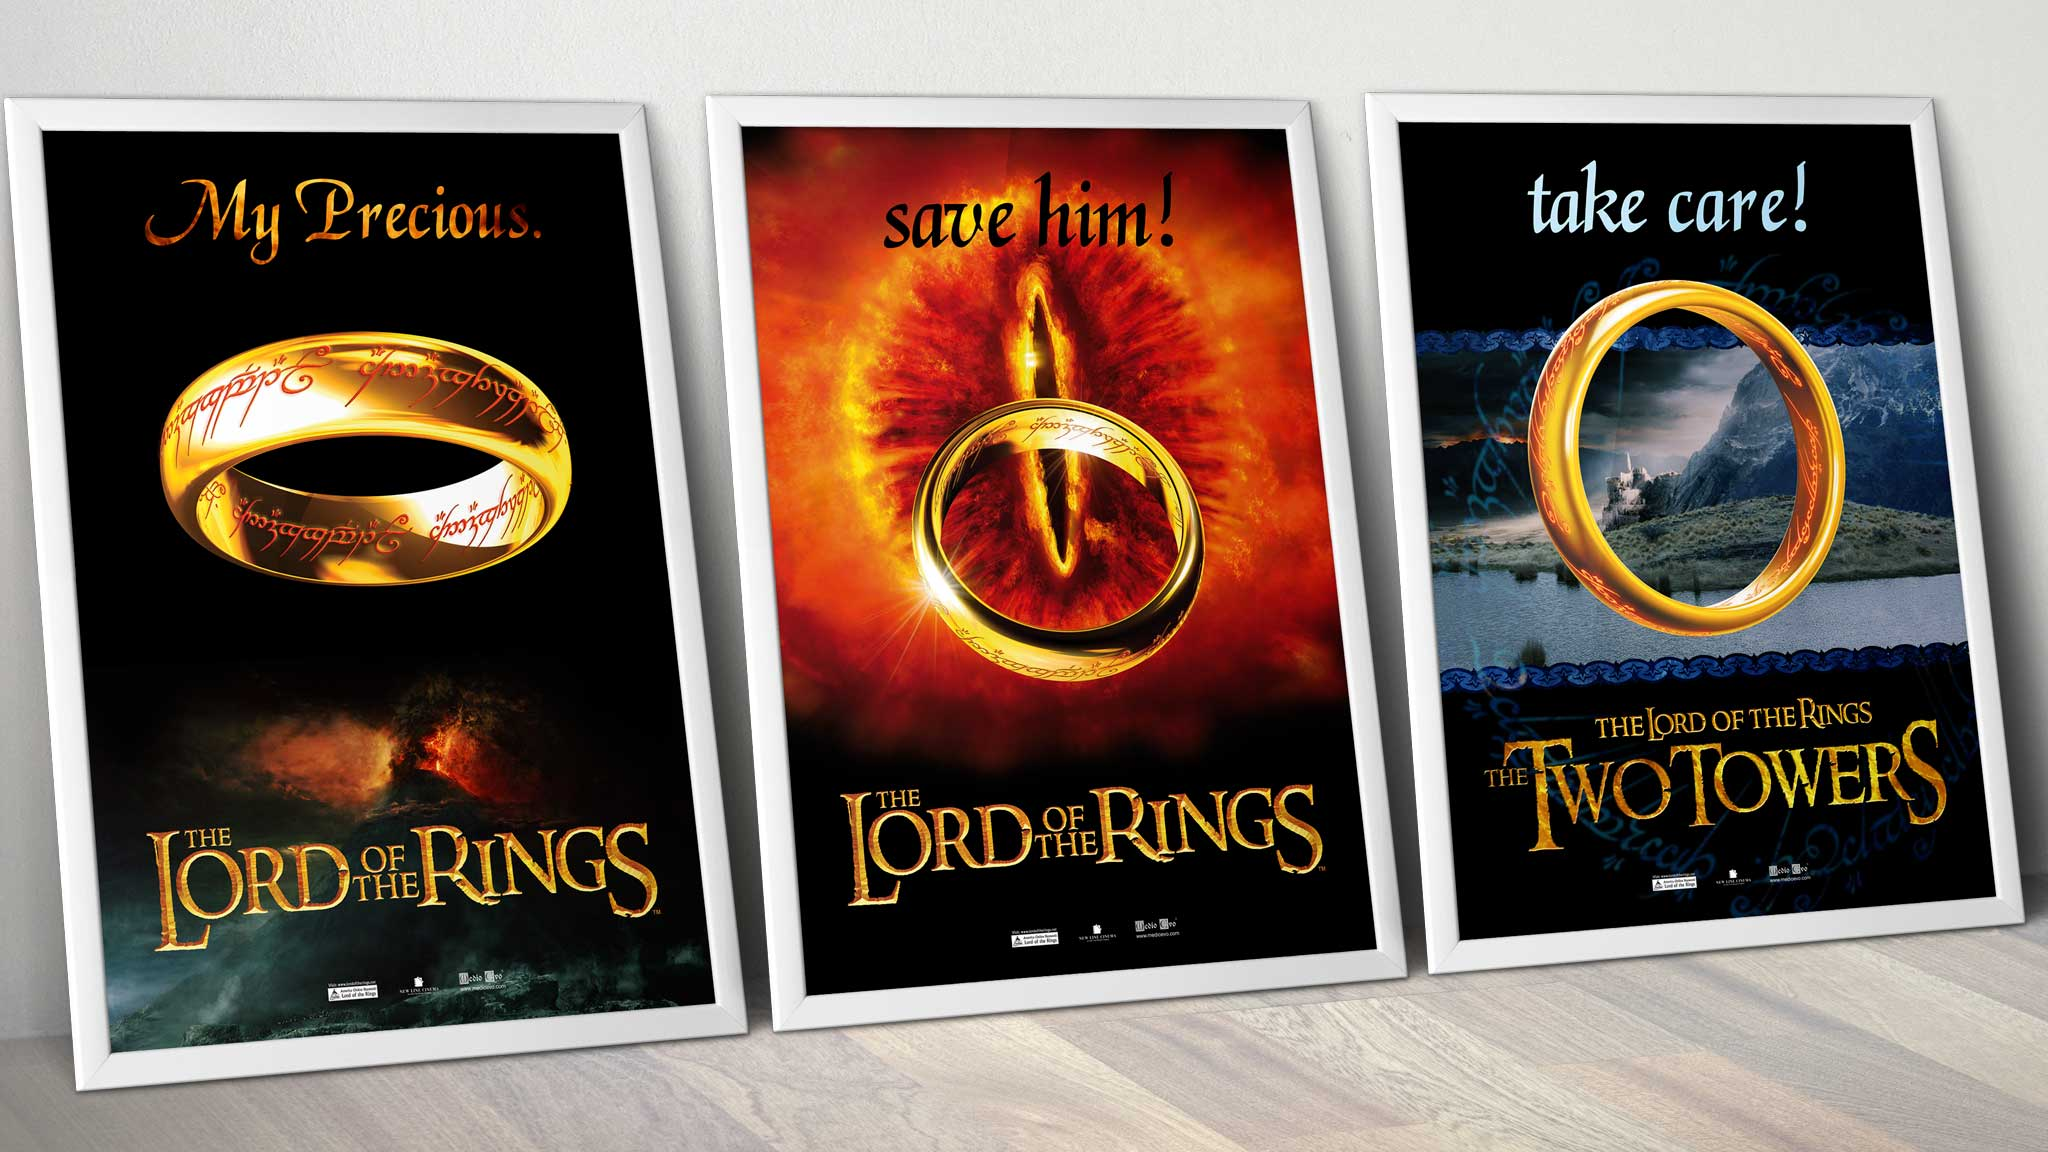 The-Lord-of-the-Rings-08